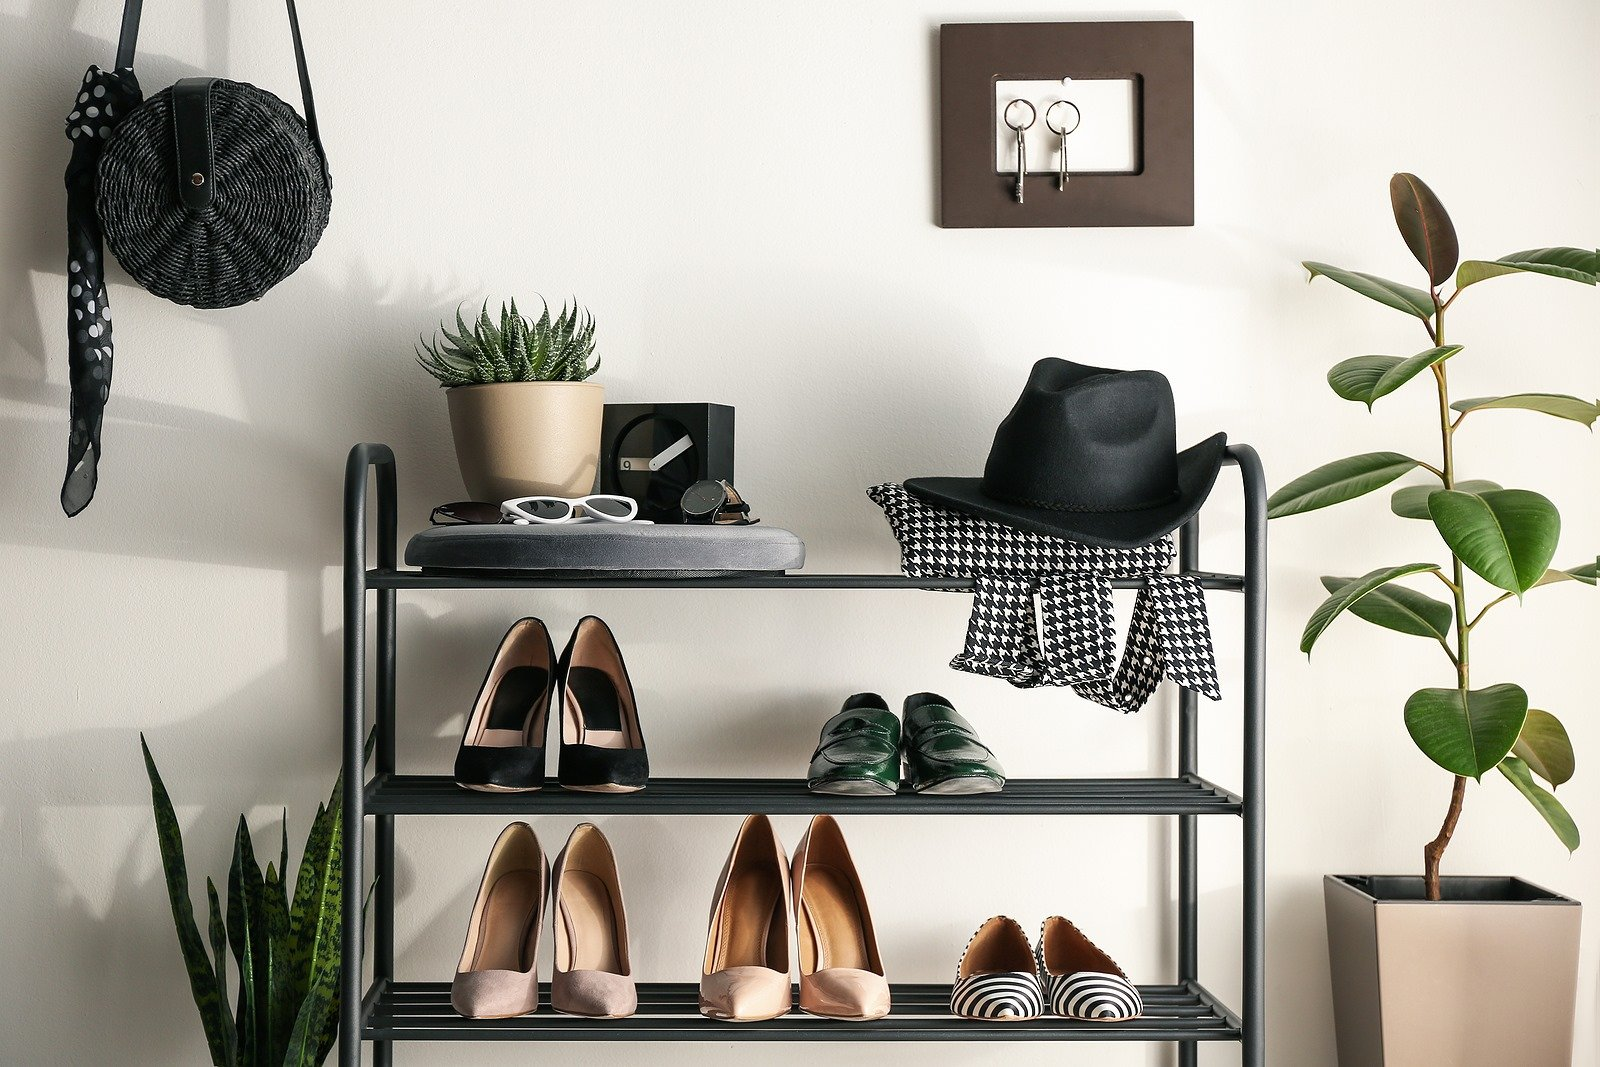 5 Outstanding Advantages Of Shoe Storage For Under Stairs